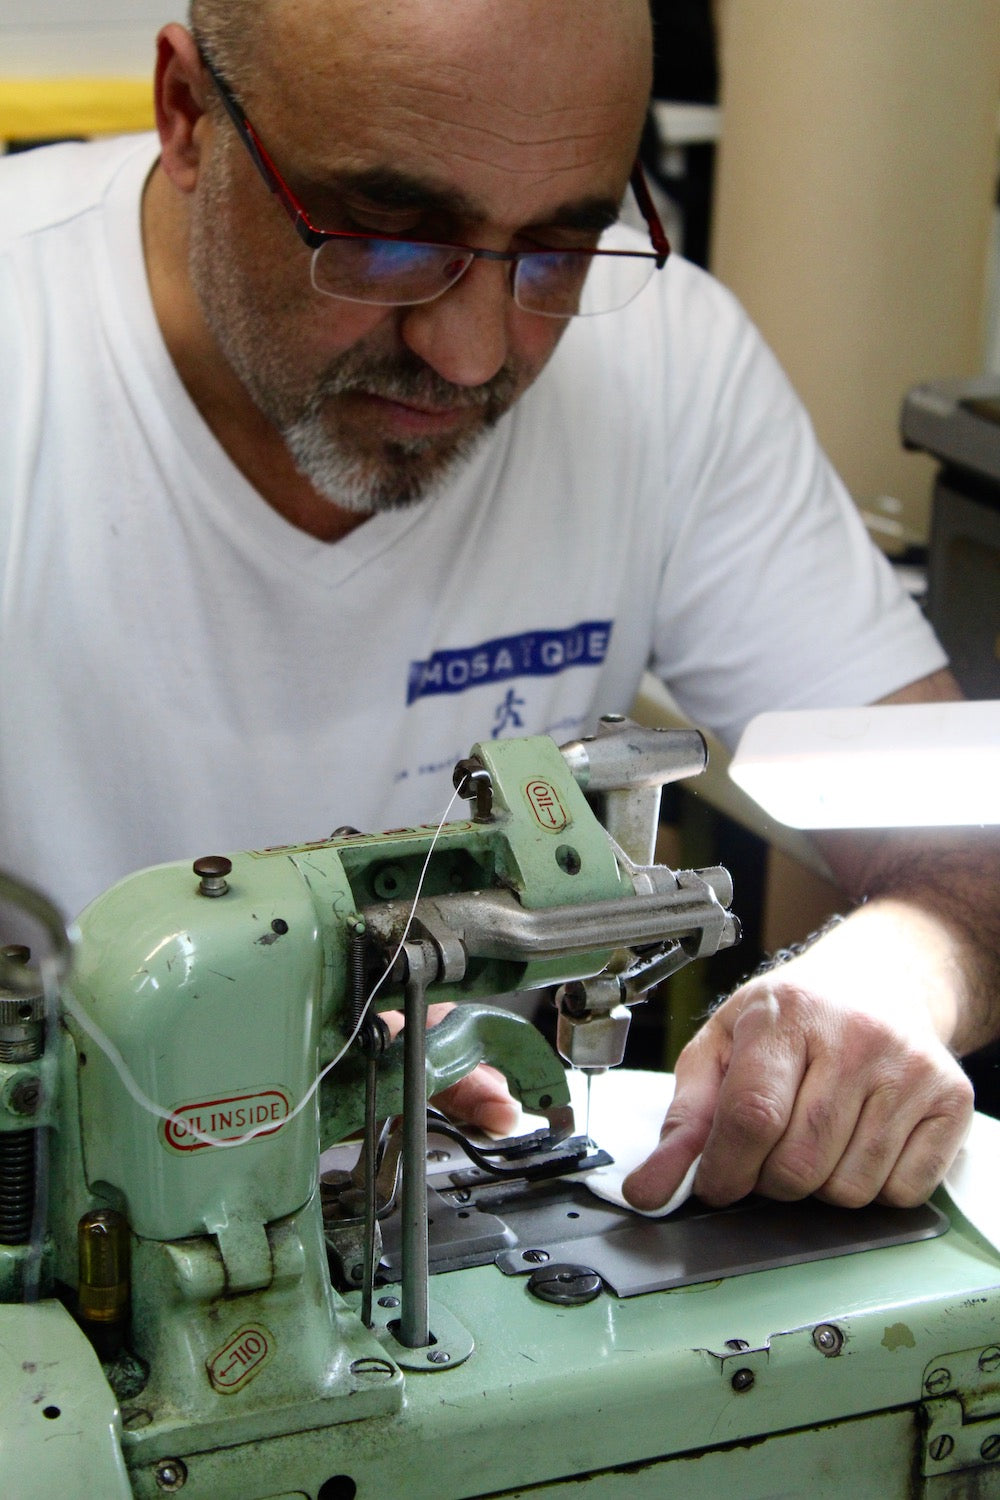 Les Sublimes Factory - Rosenberg Paris Sewing